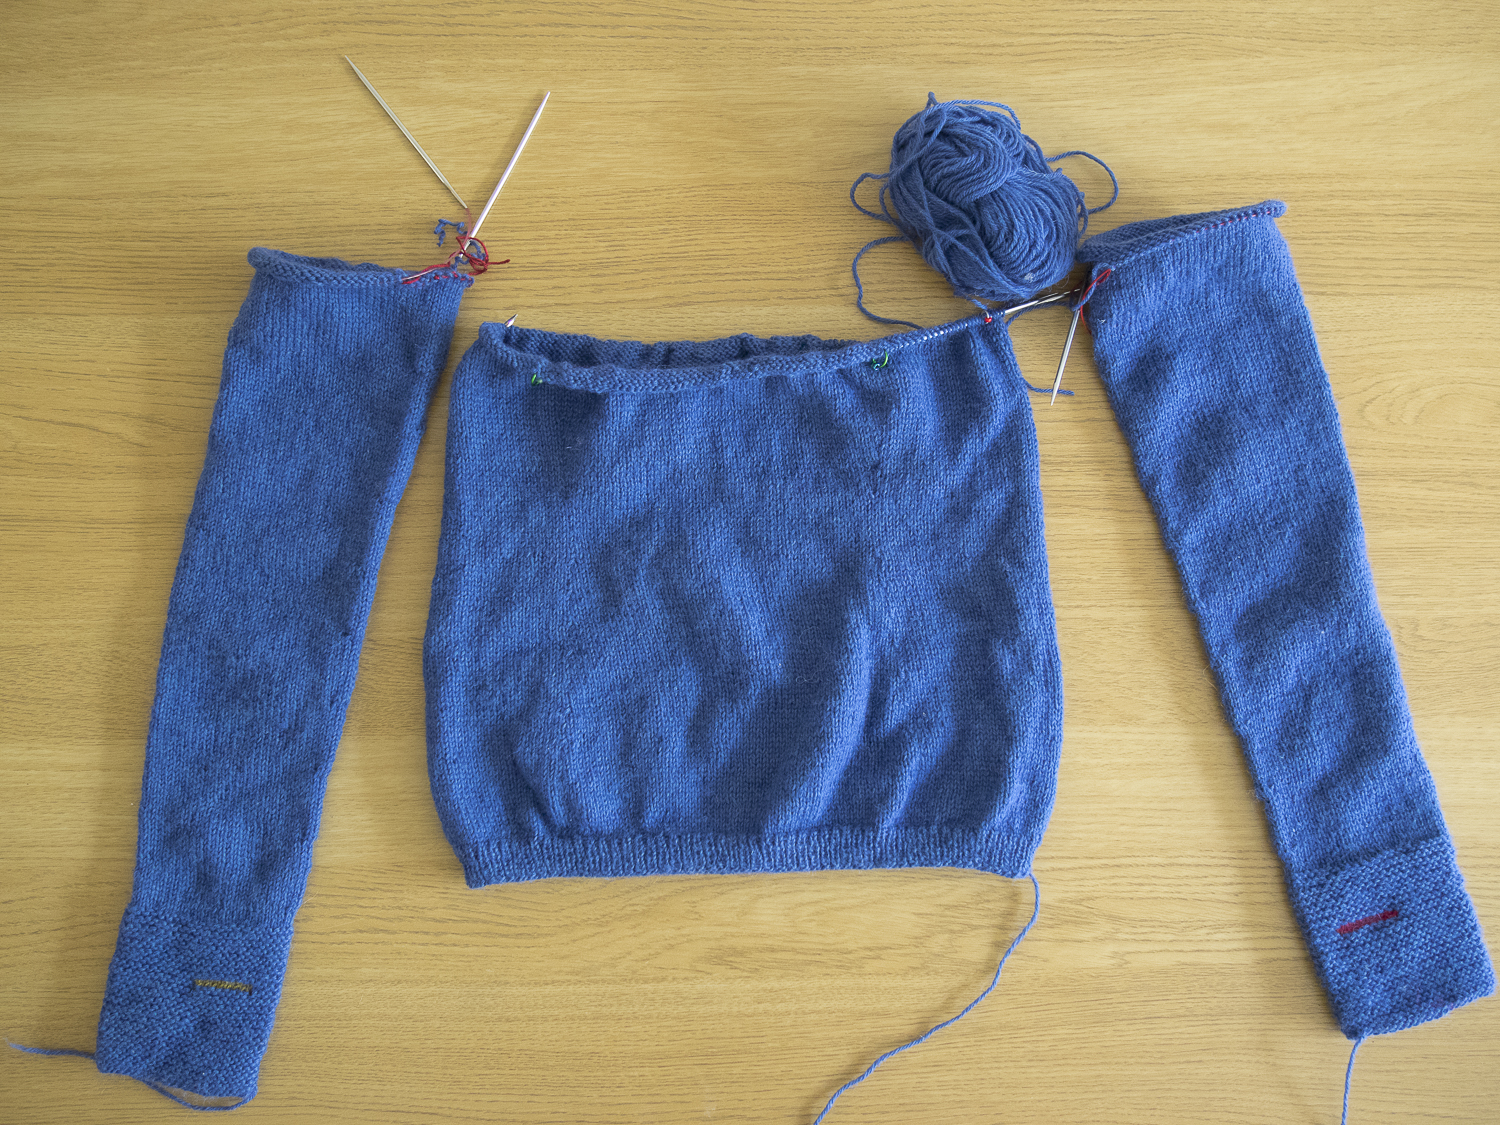 Joining the Sleeves and Body on a Seamless Bottom Up Sweater